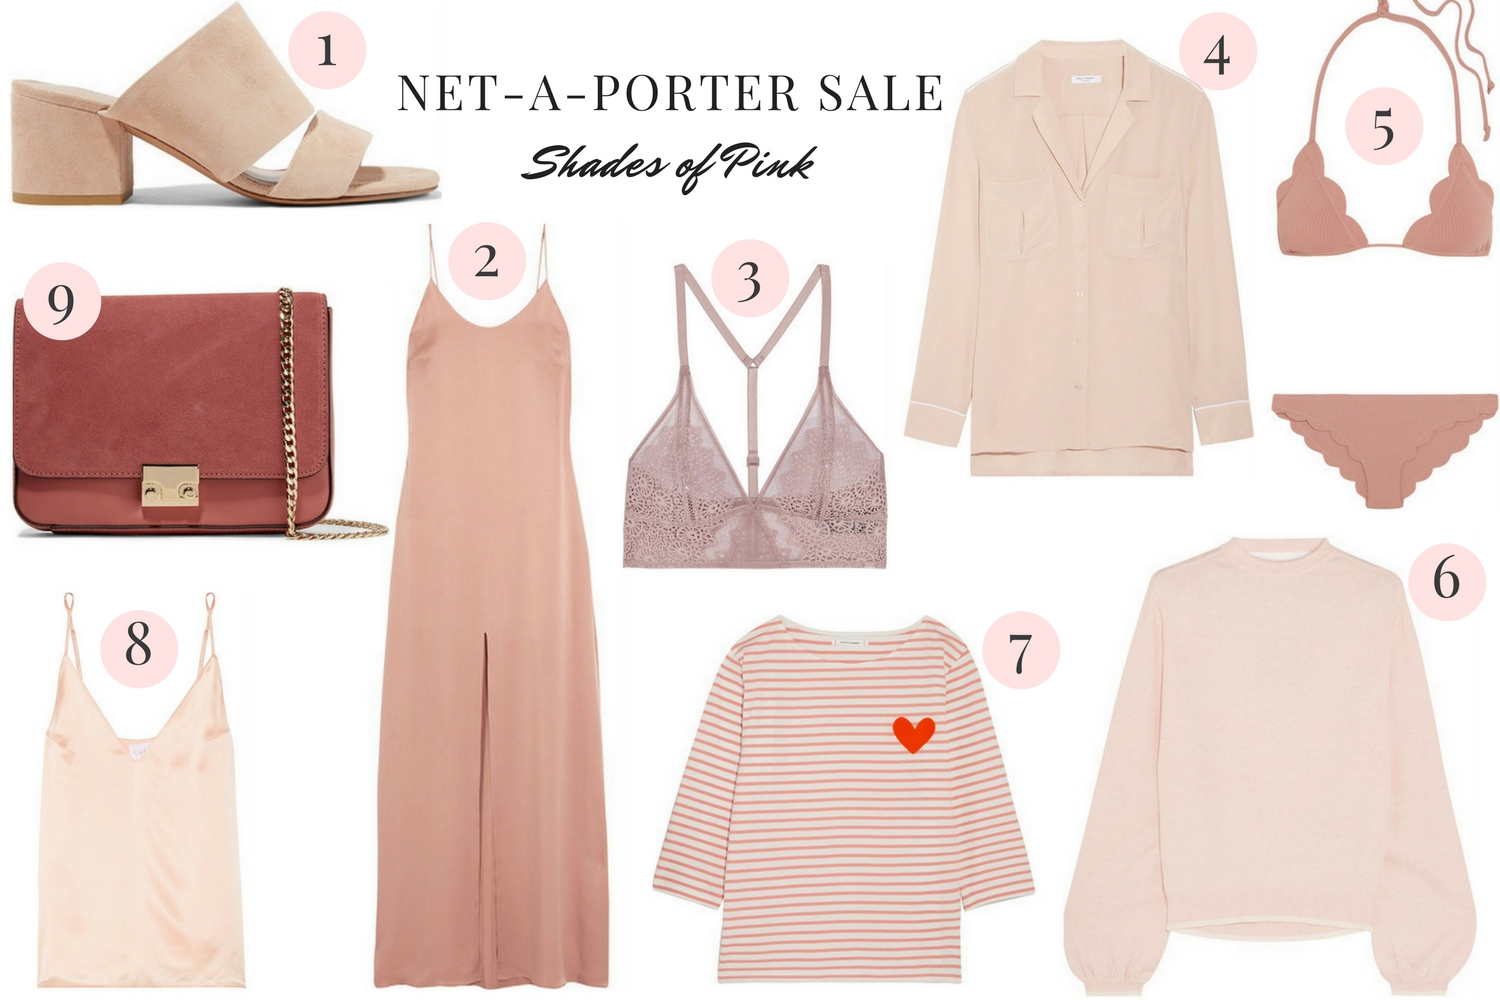 Net-a-porter sale - finds under $300 - shades of pink